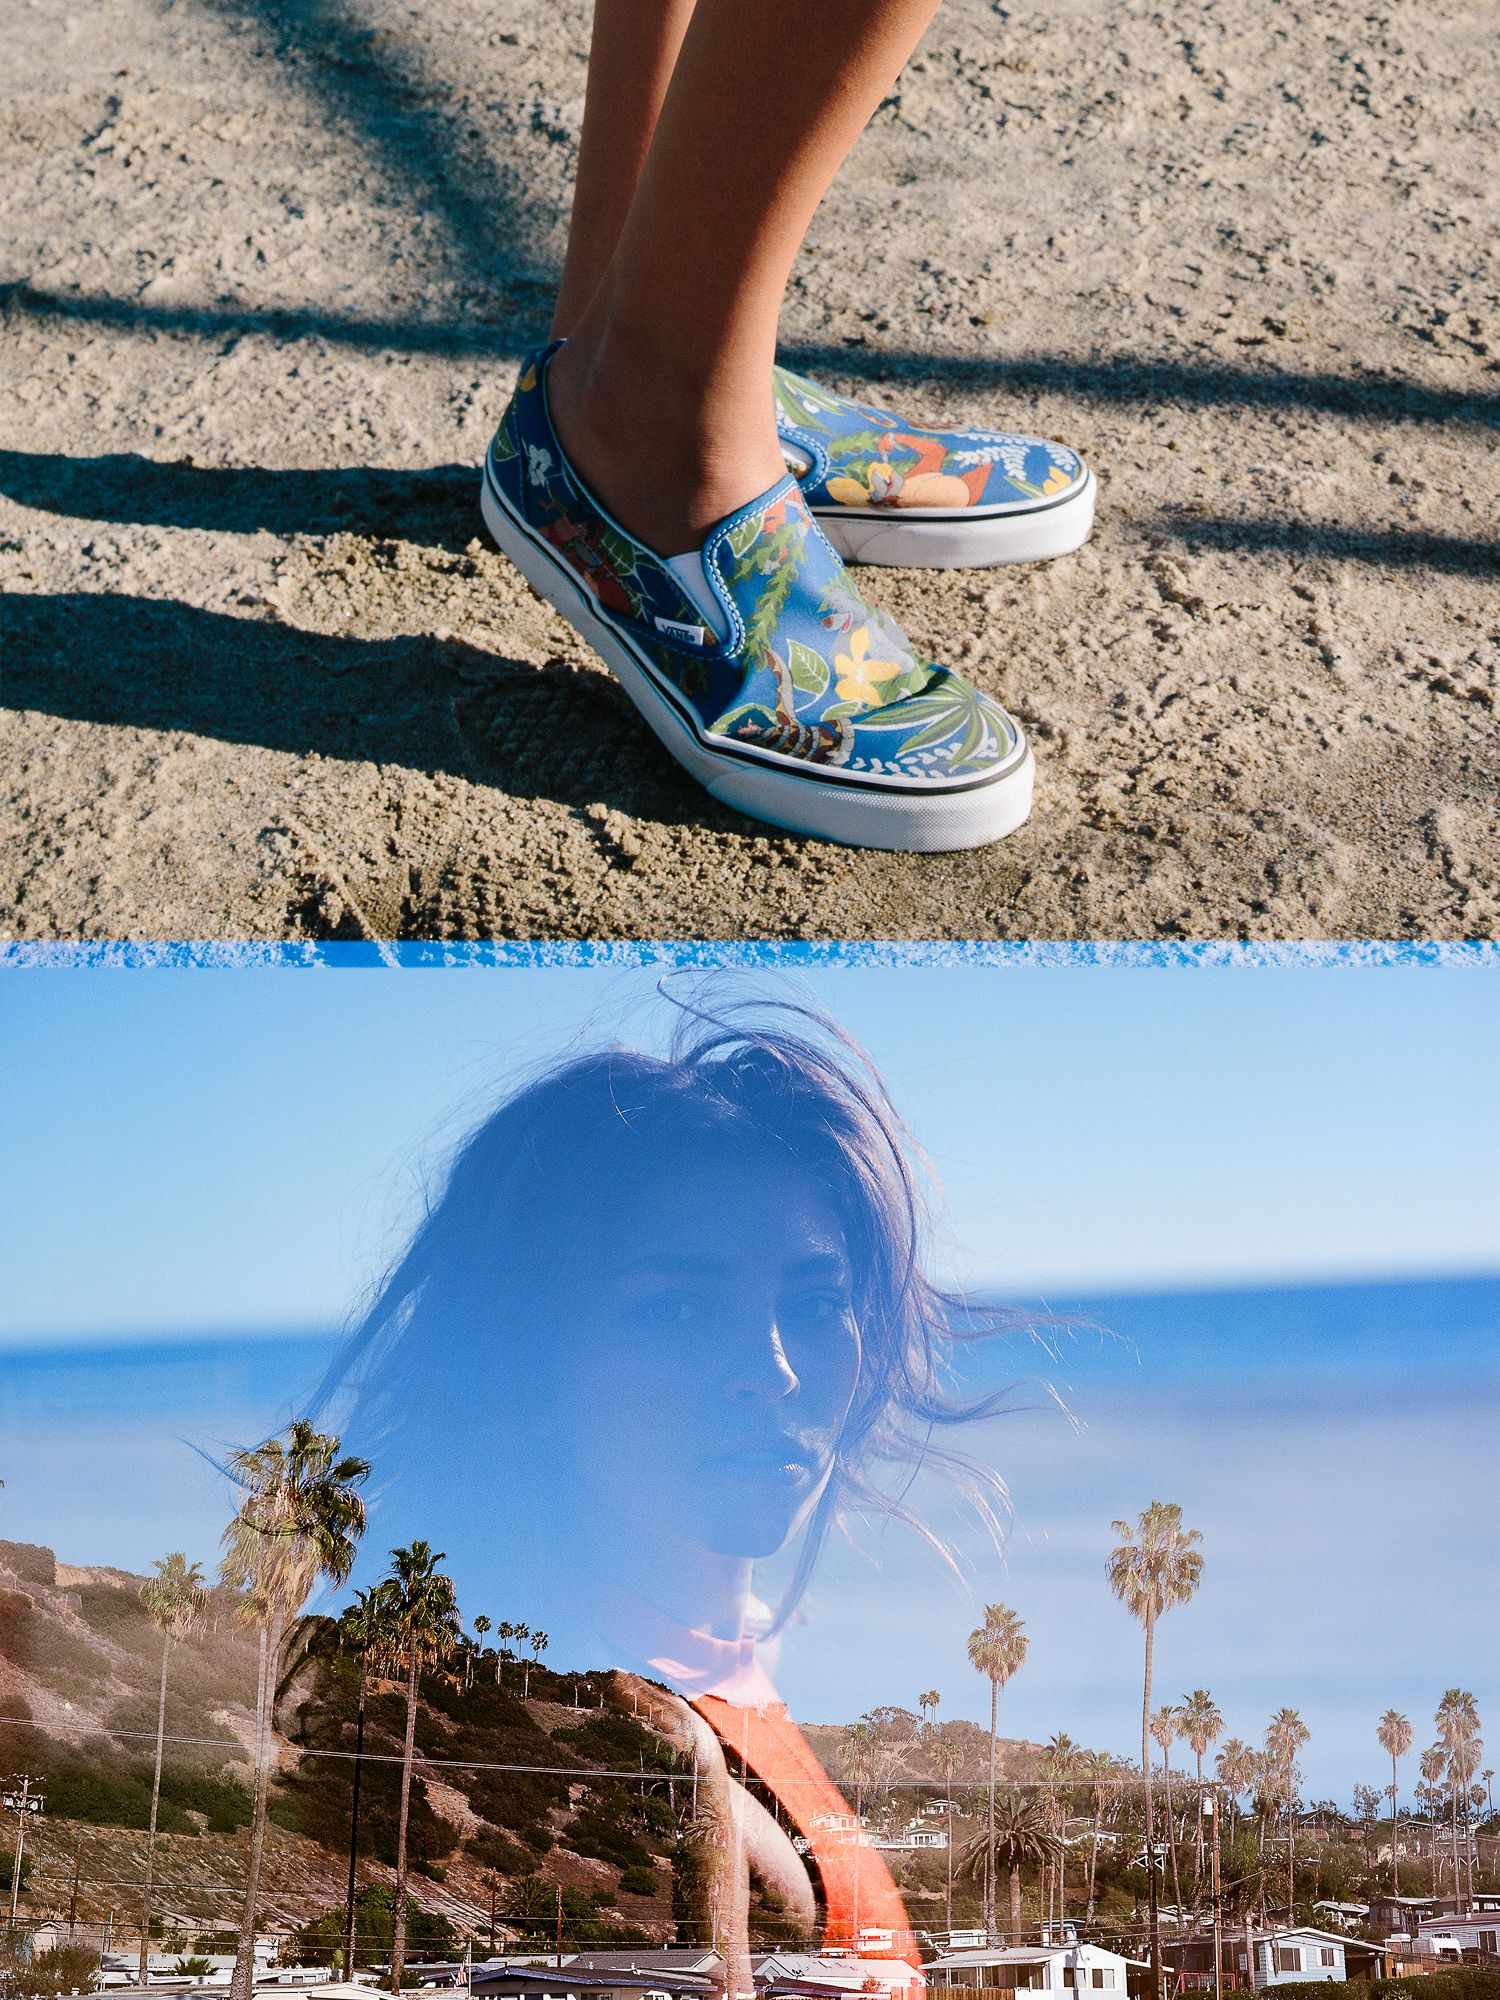 Stay in a Summer State of Mind with the Disney and Vans Collection